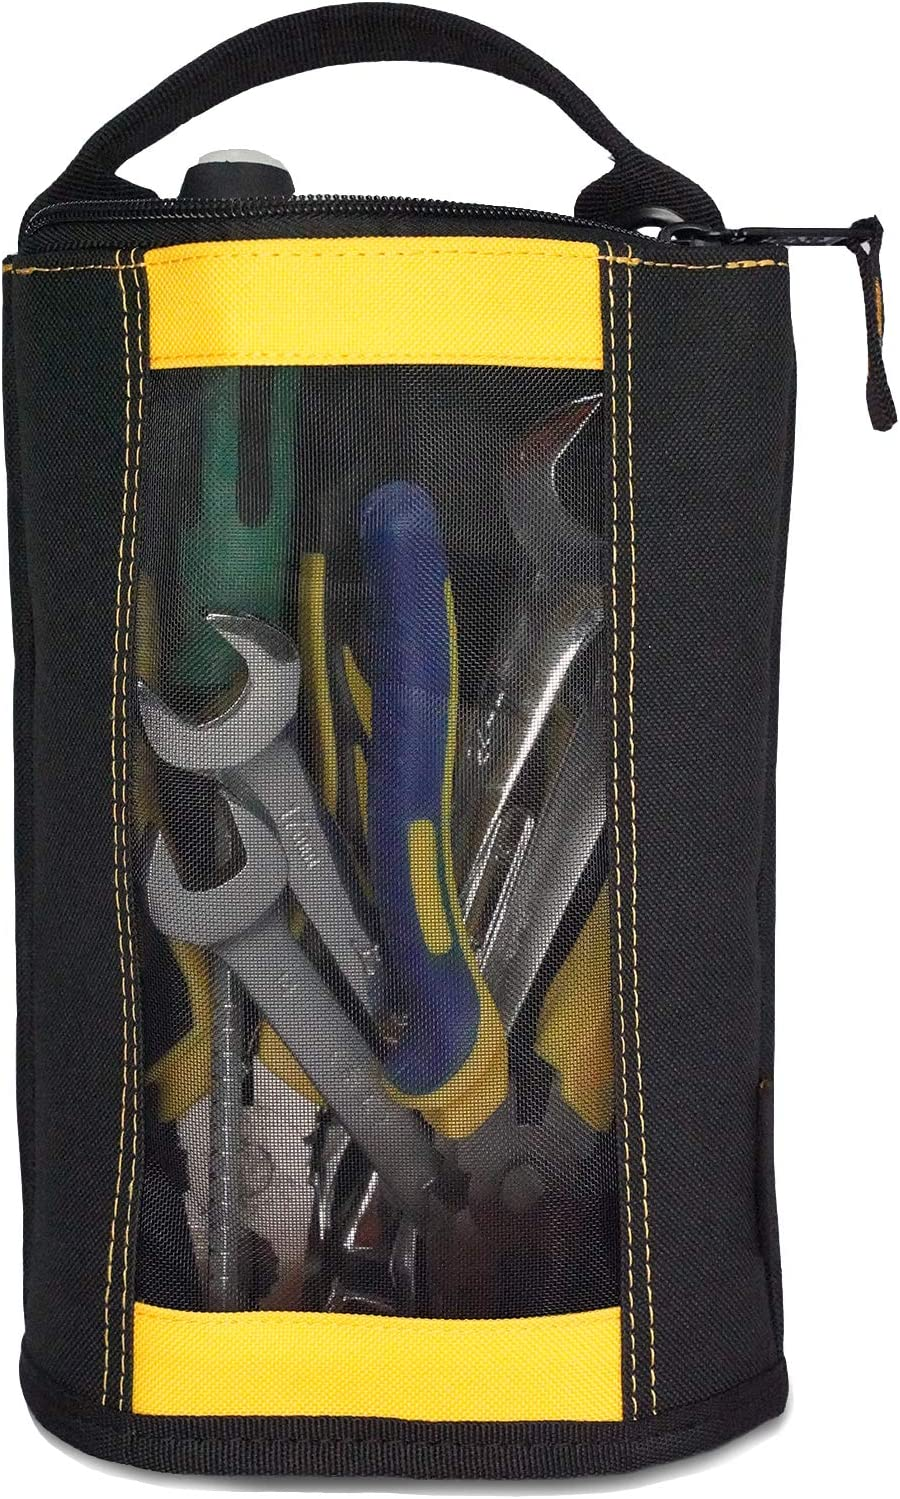 MELOTOUGH Canvas Zipper Tool Pouch Price reduction Bag -Fastener bag with Same day shipping